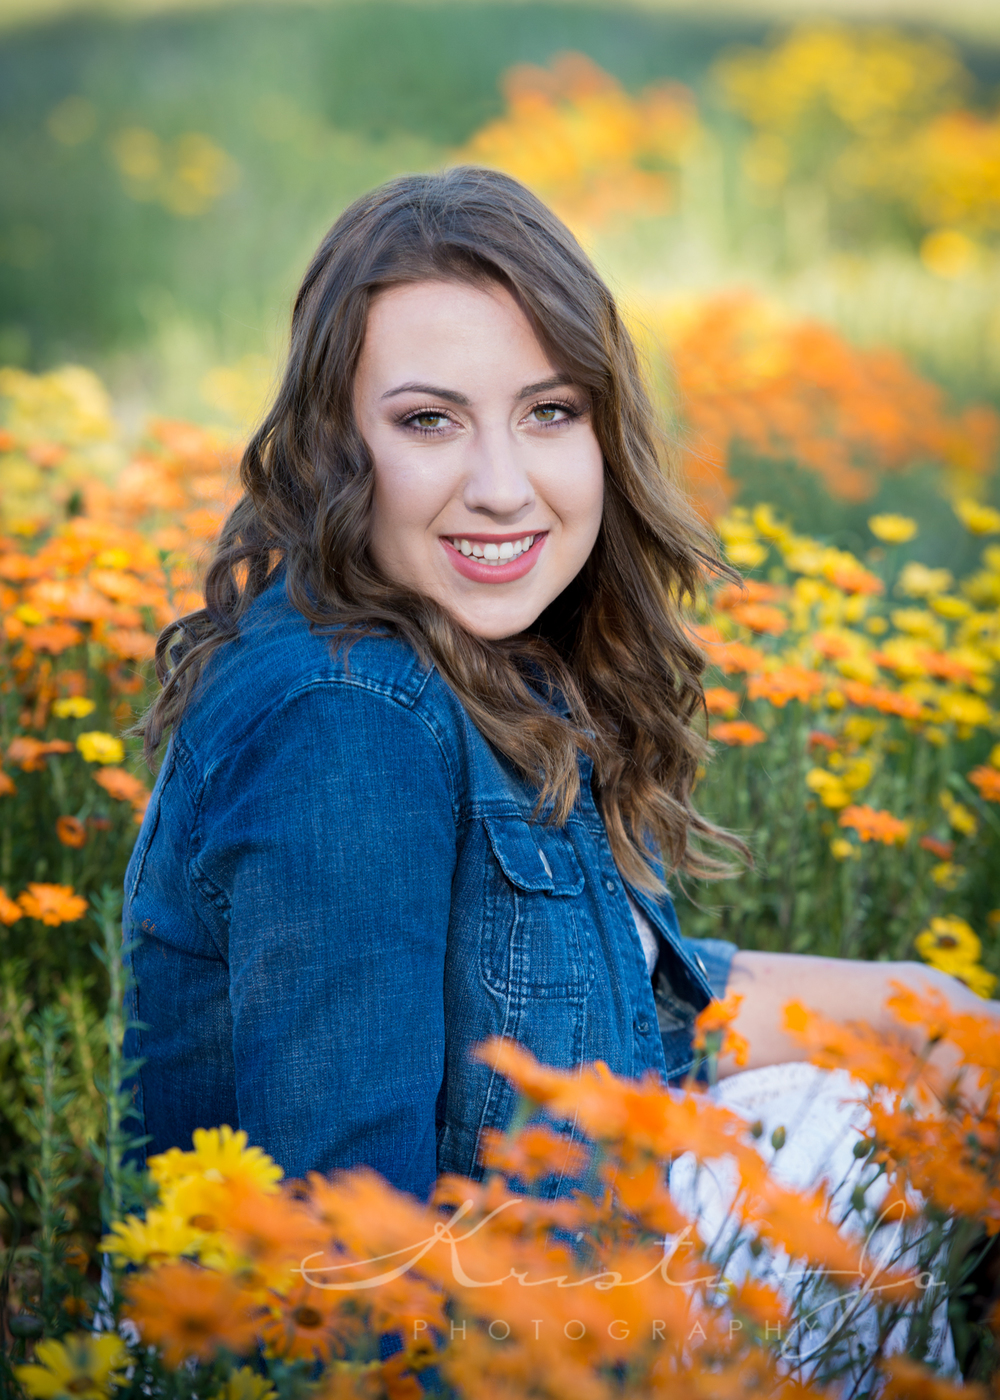 LaurenSeniorPortrait2.jpg